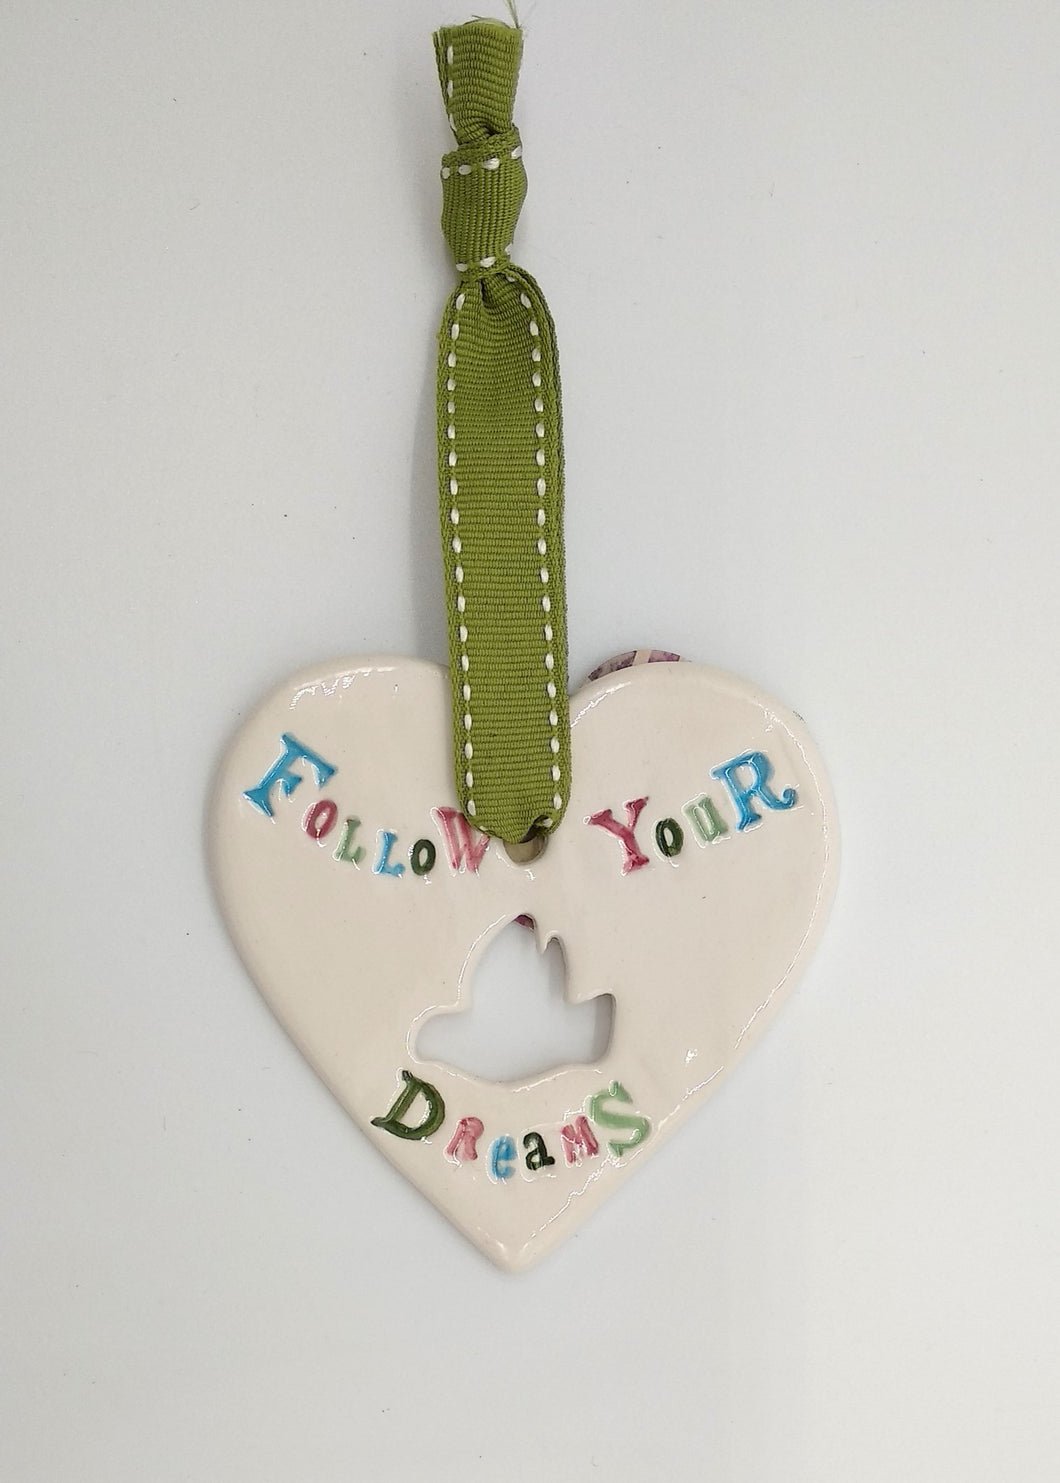 Follow your dreams handmade ceramic hanging heart